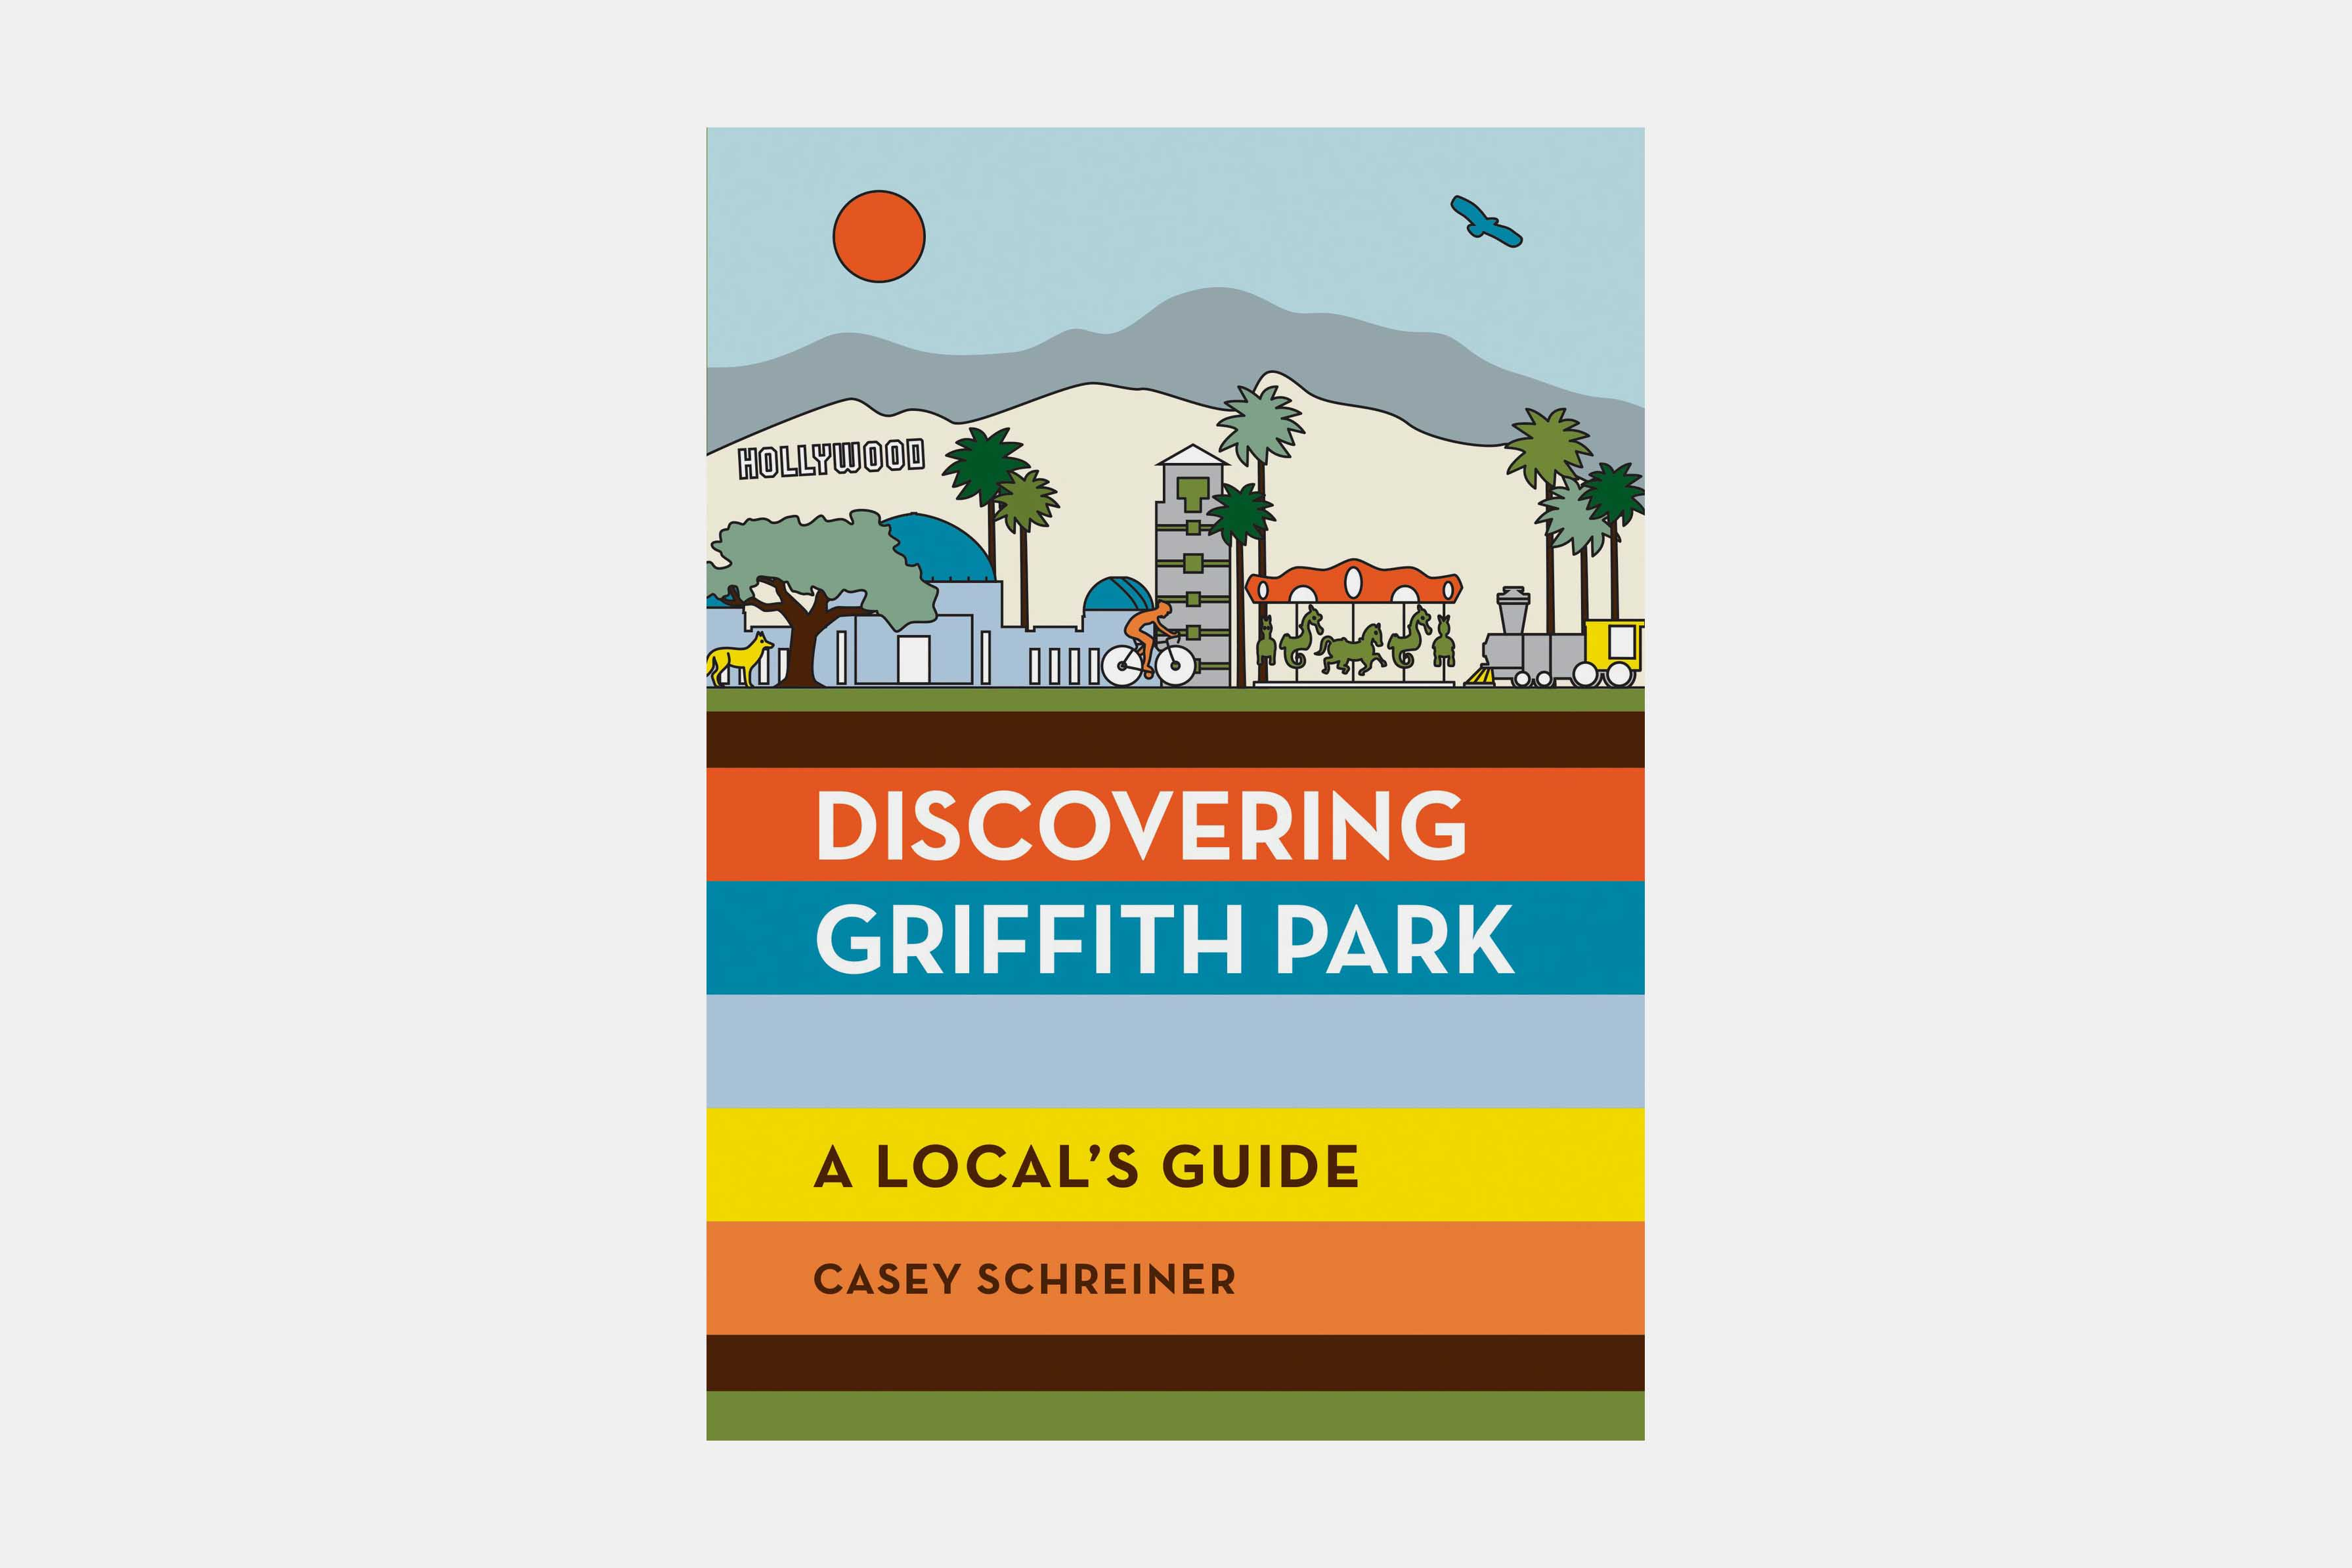 modern hiker discovering griffith park